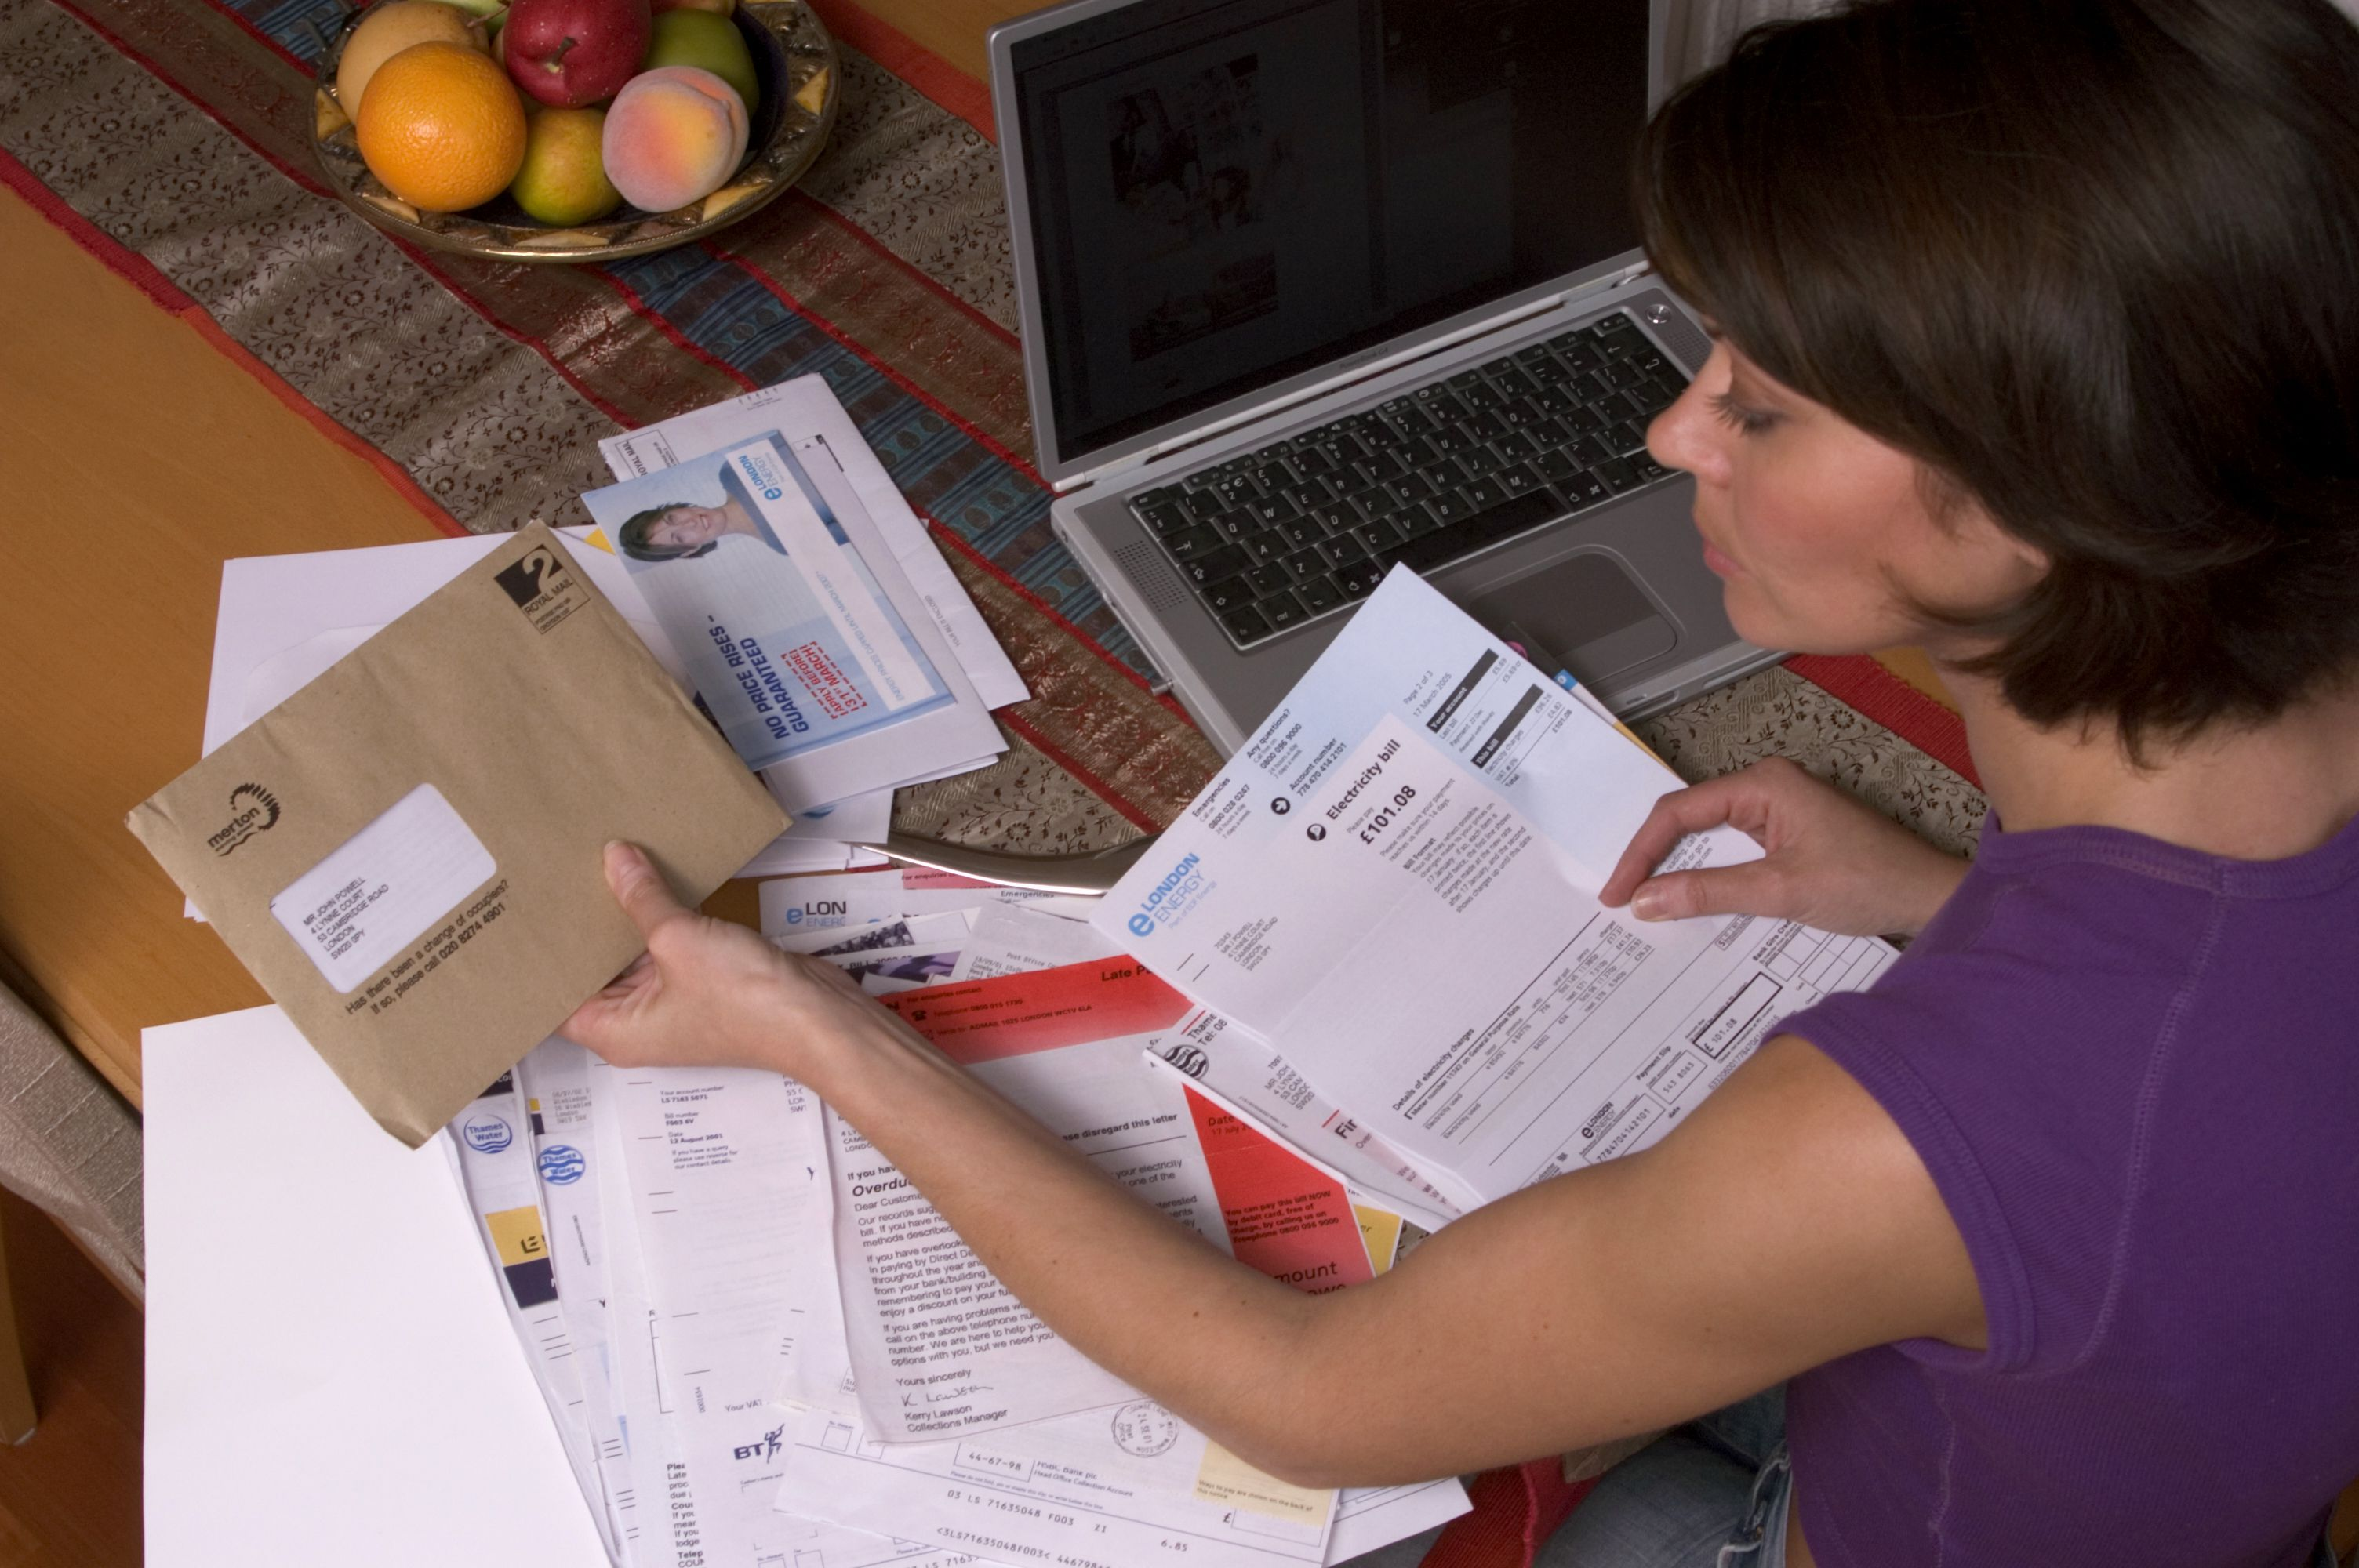 MODEL RELEASED - WOMAN SORTING HER PAPERWORK NEXT TO A LAPTOP COMPUTERVARIOUS